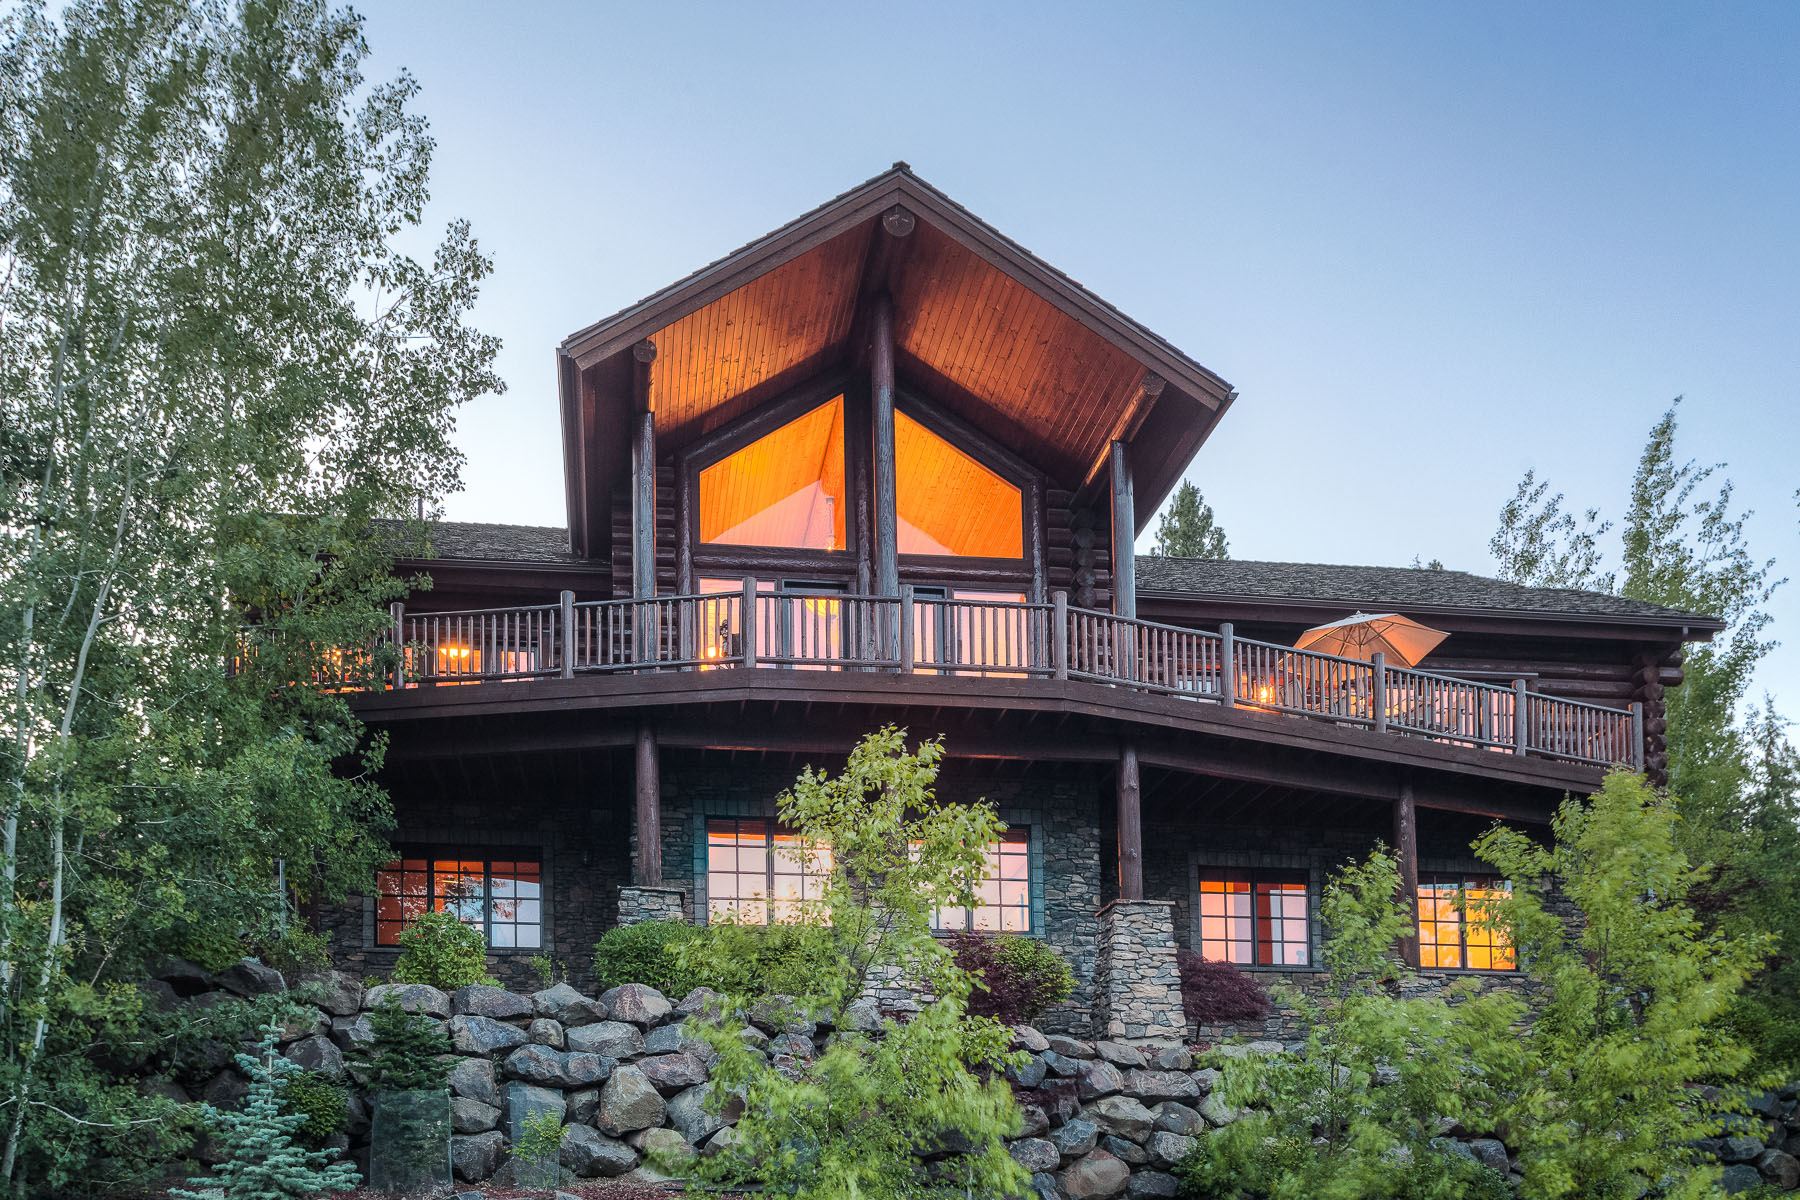 Single Family Home for Sale at Custom Built Log Home with Lake Views 5409 W Onyx Circle Coeur D Alene, Idaho, 83814 United States